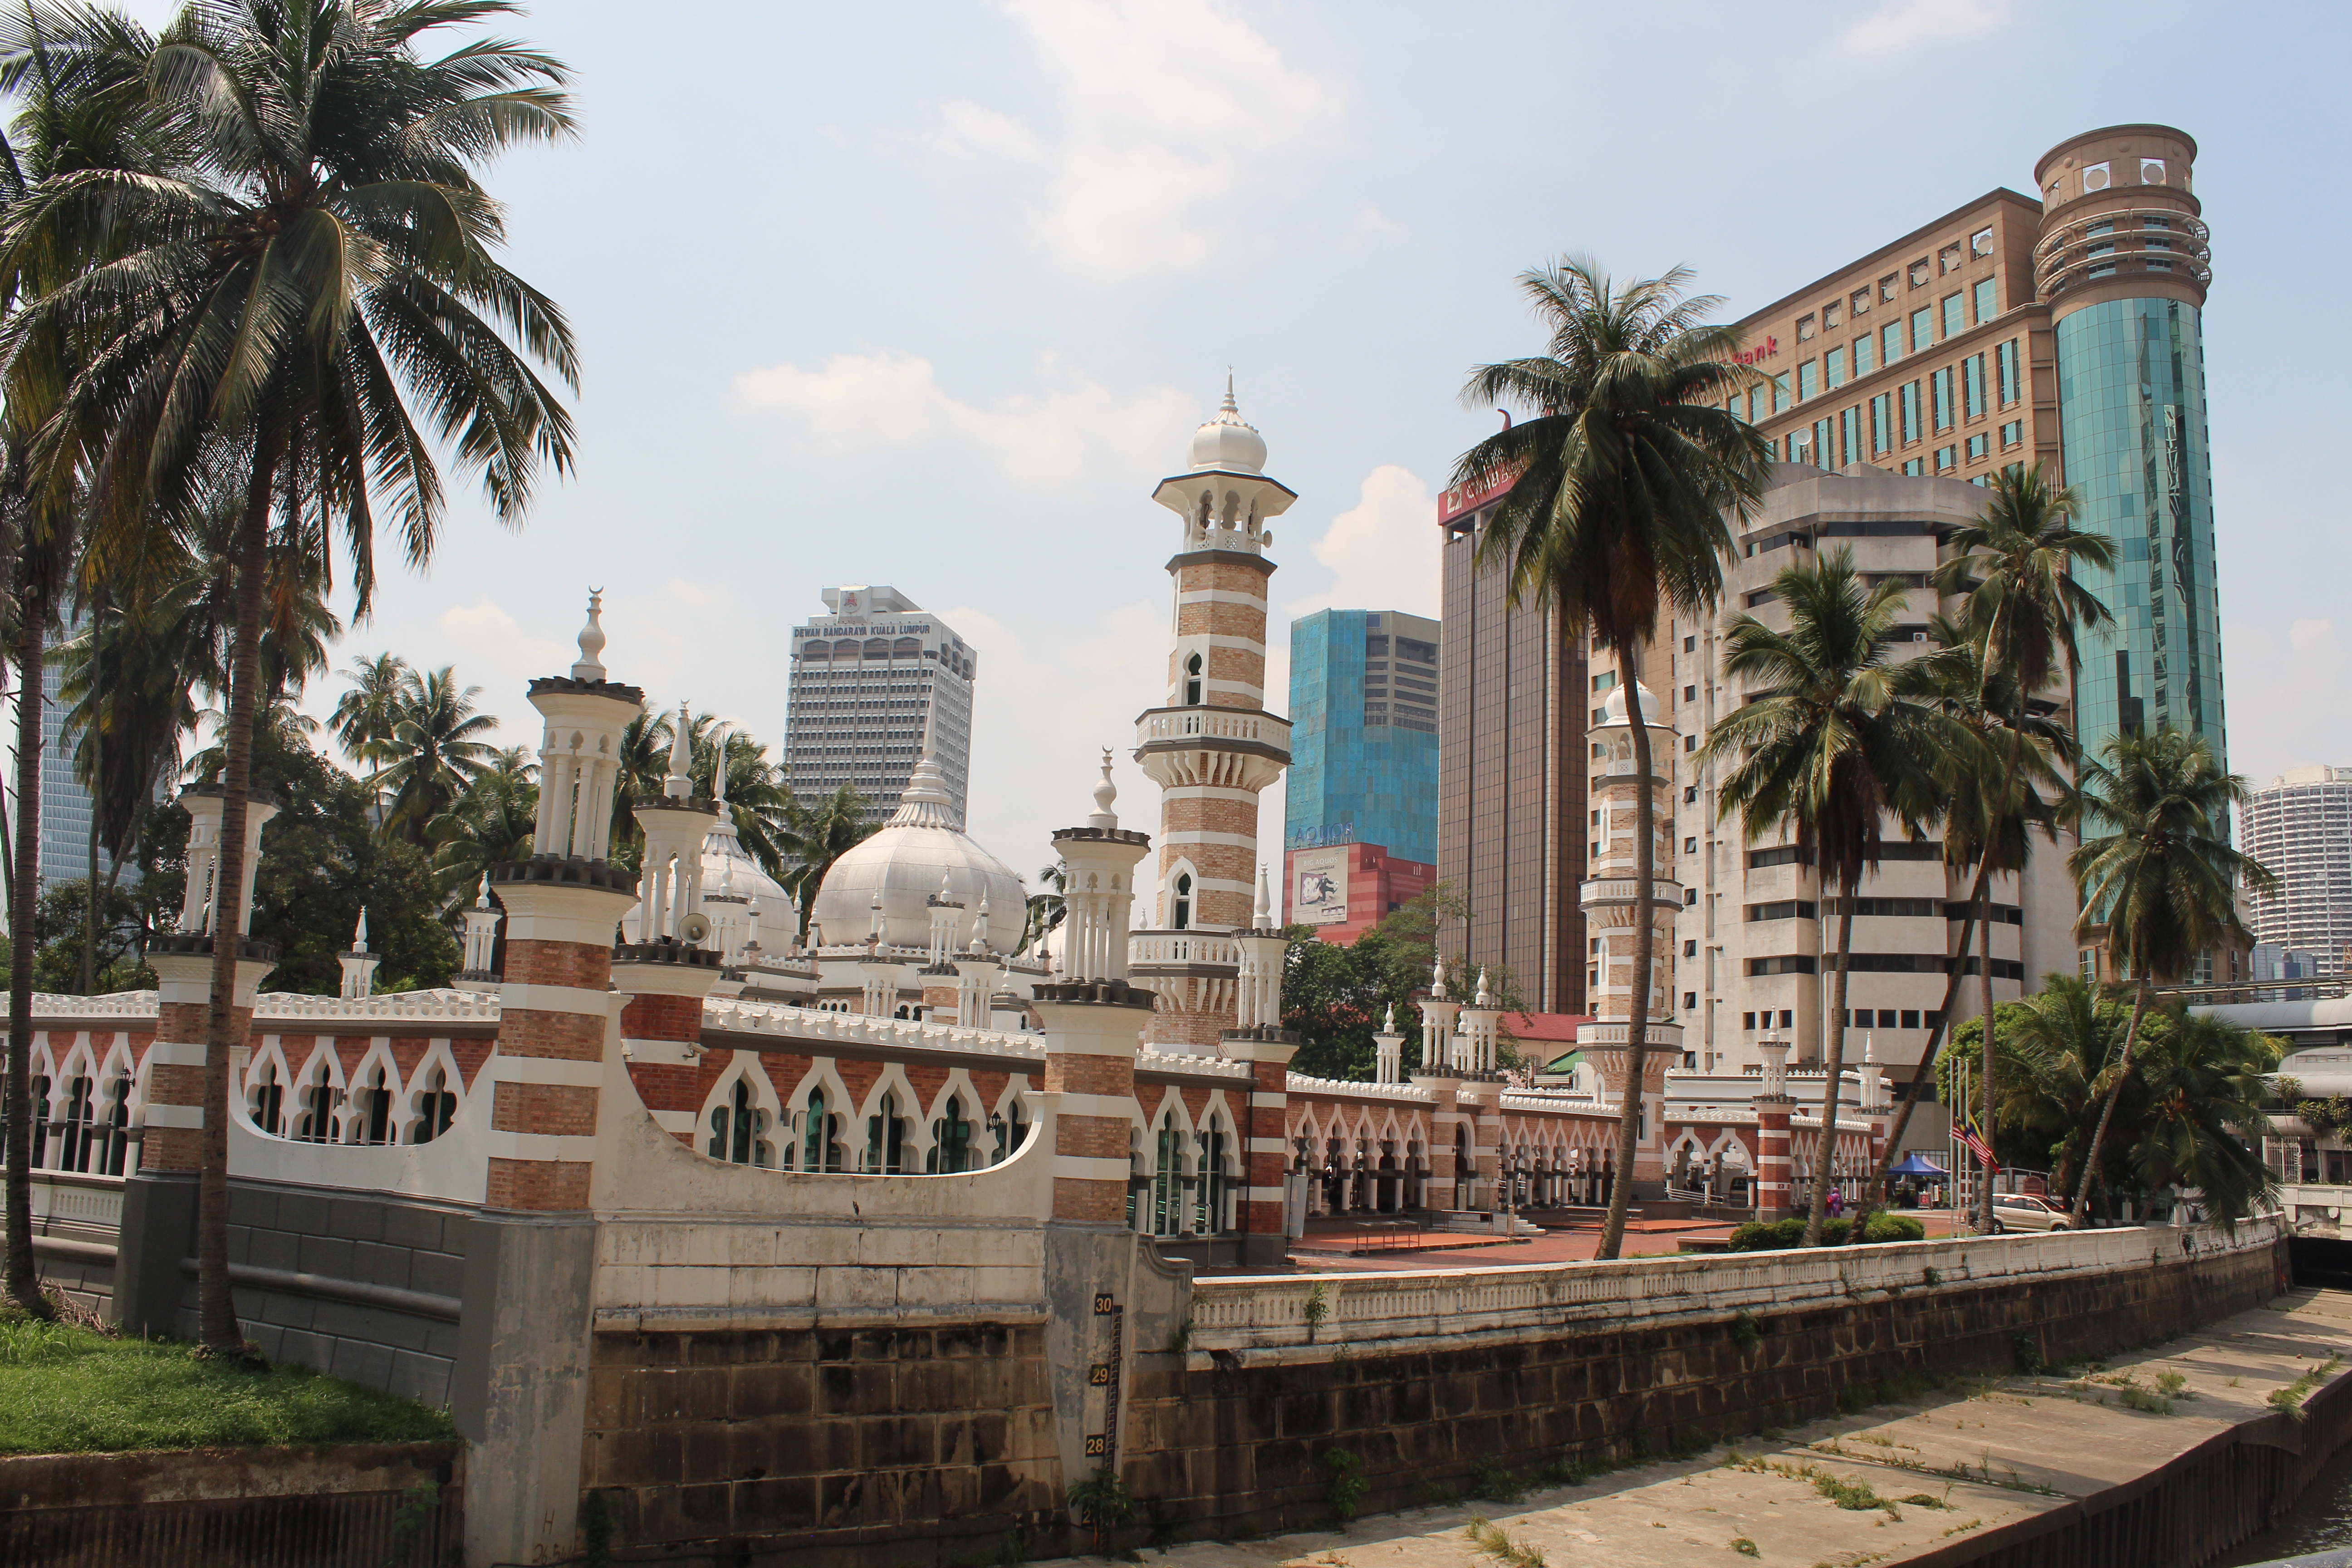 Central mosque in Kuala Lumpur in the foreground set against the background of the Kuala Lumpur skyline.